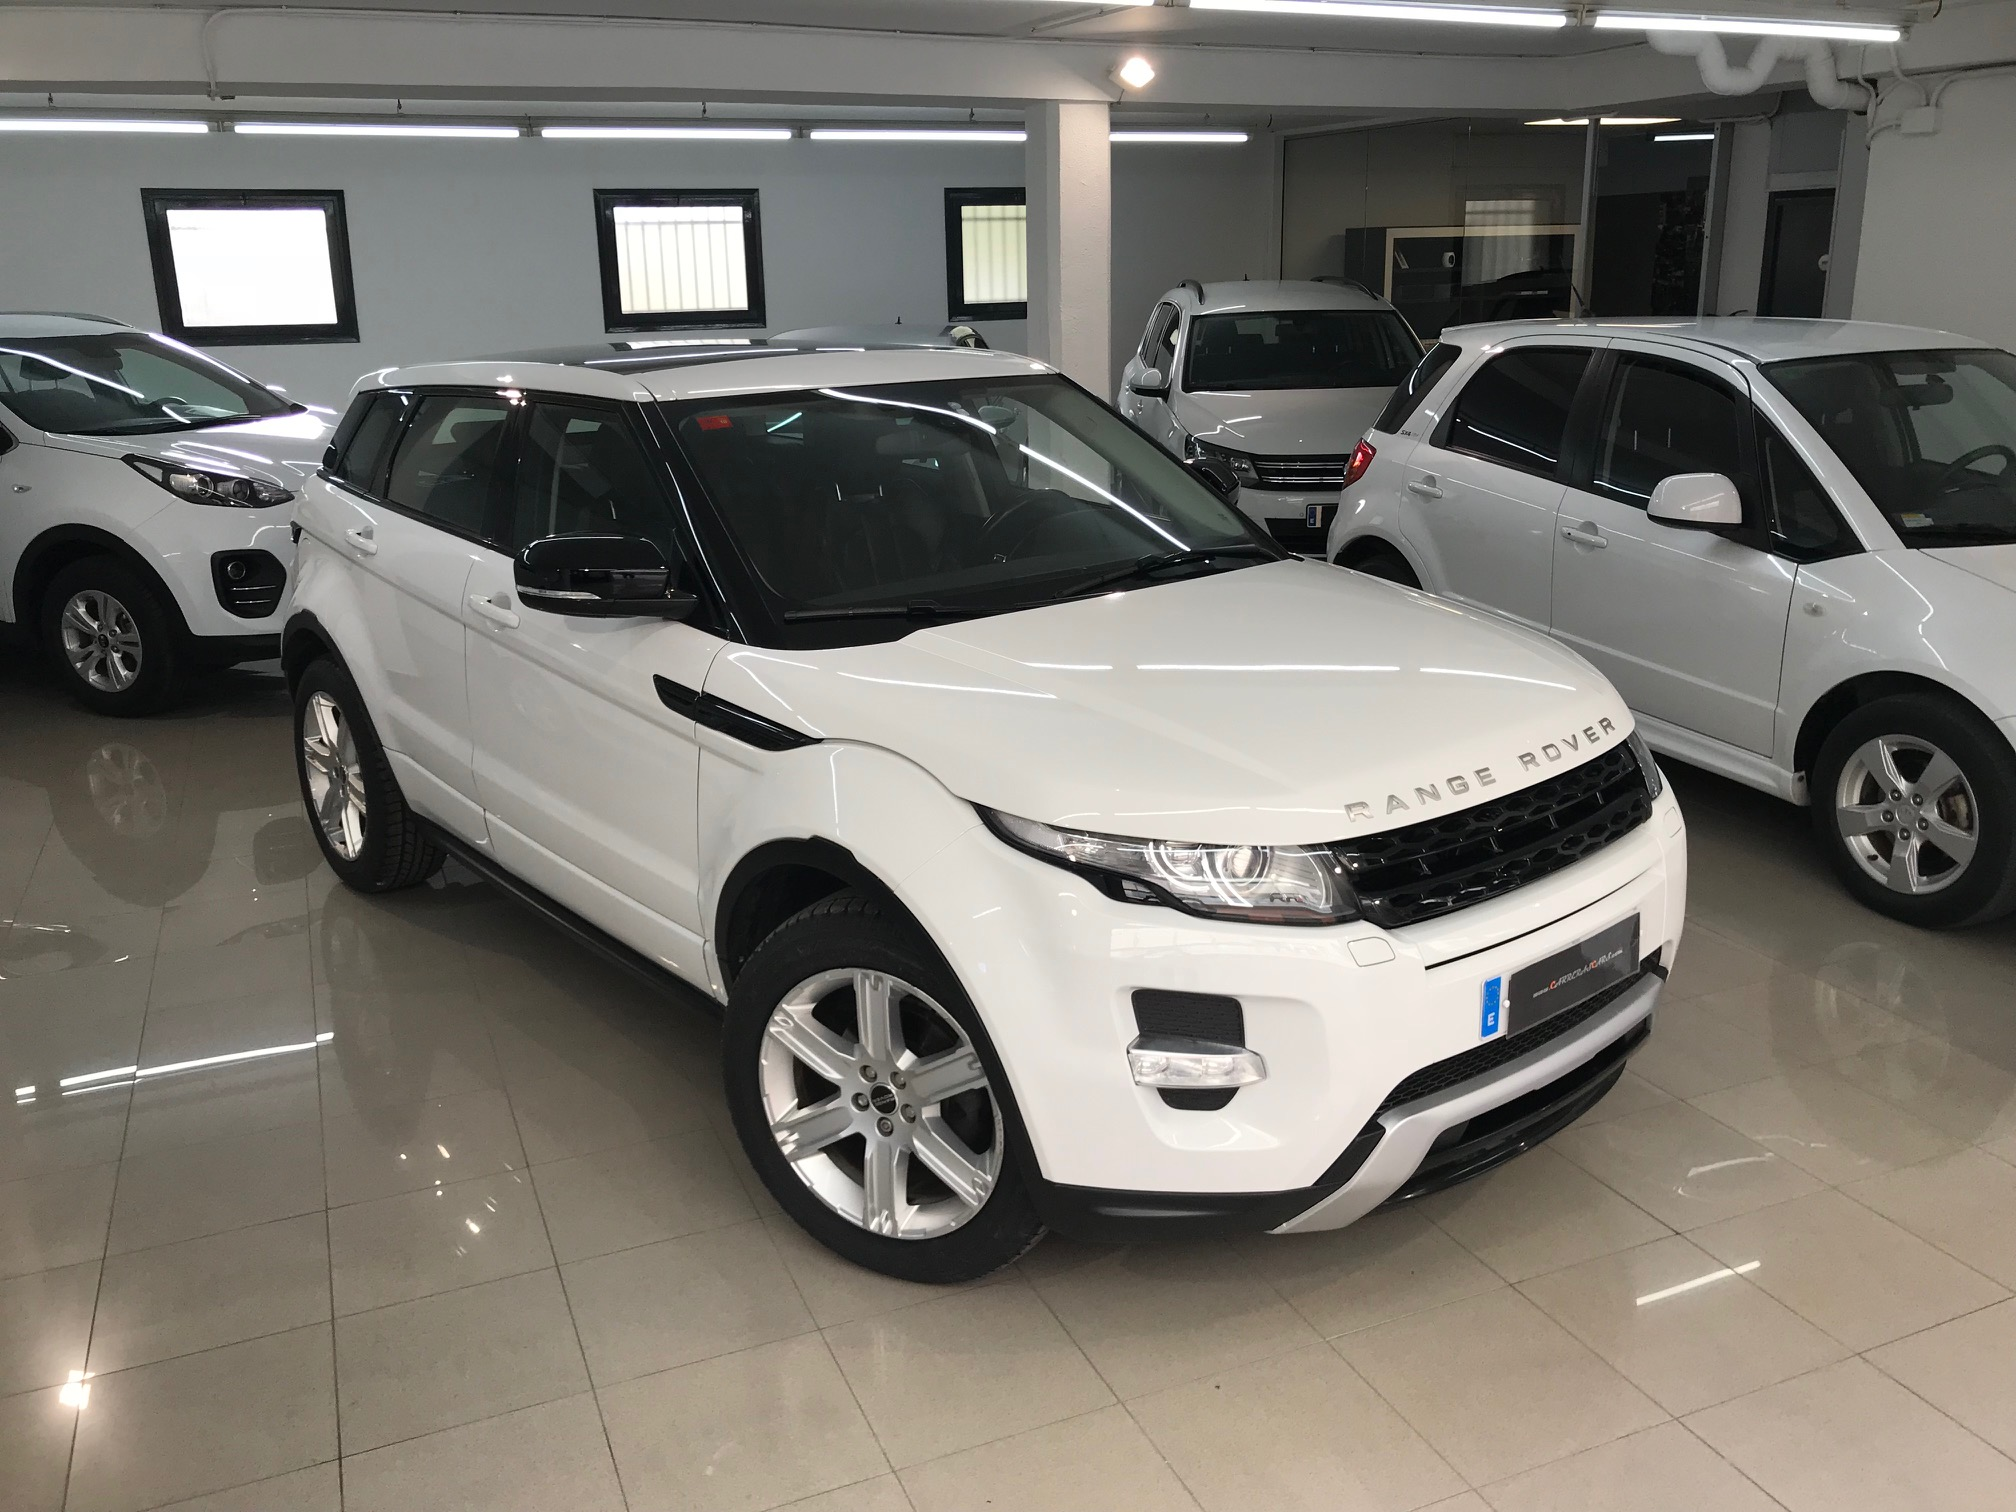 land rover range rover evoque 2 2sd4 190cv 4 4 6vel manual carreras cars. Black Bedroom Furniture Sets. Home Design Ideas